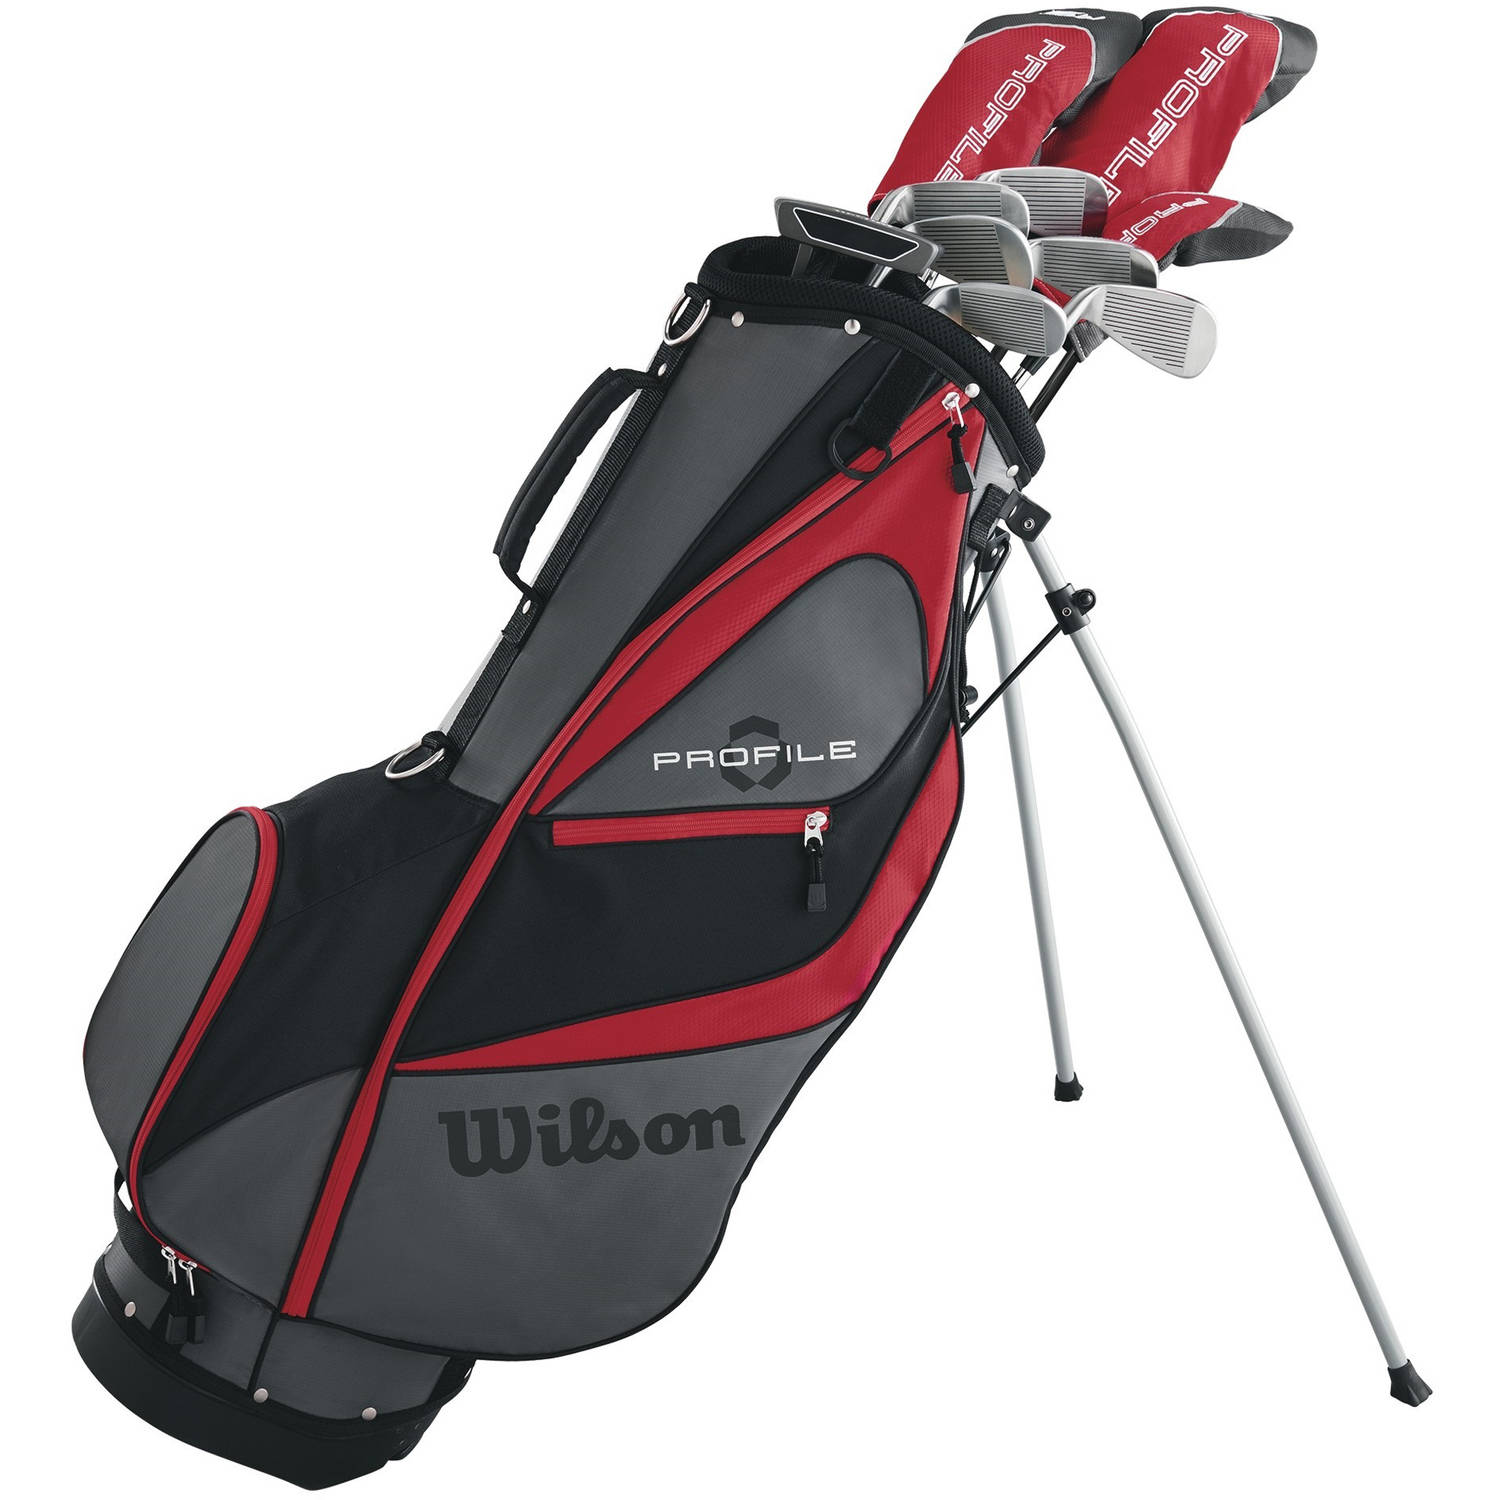 Wilson Profile XD Mens Package Golf Set, Long, Left Handed by Wilson Sporting Goods Co.